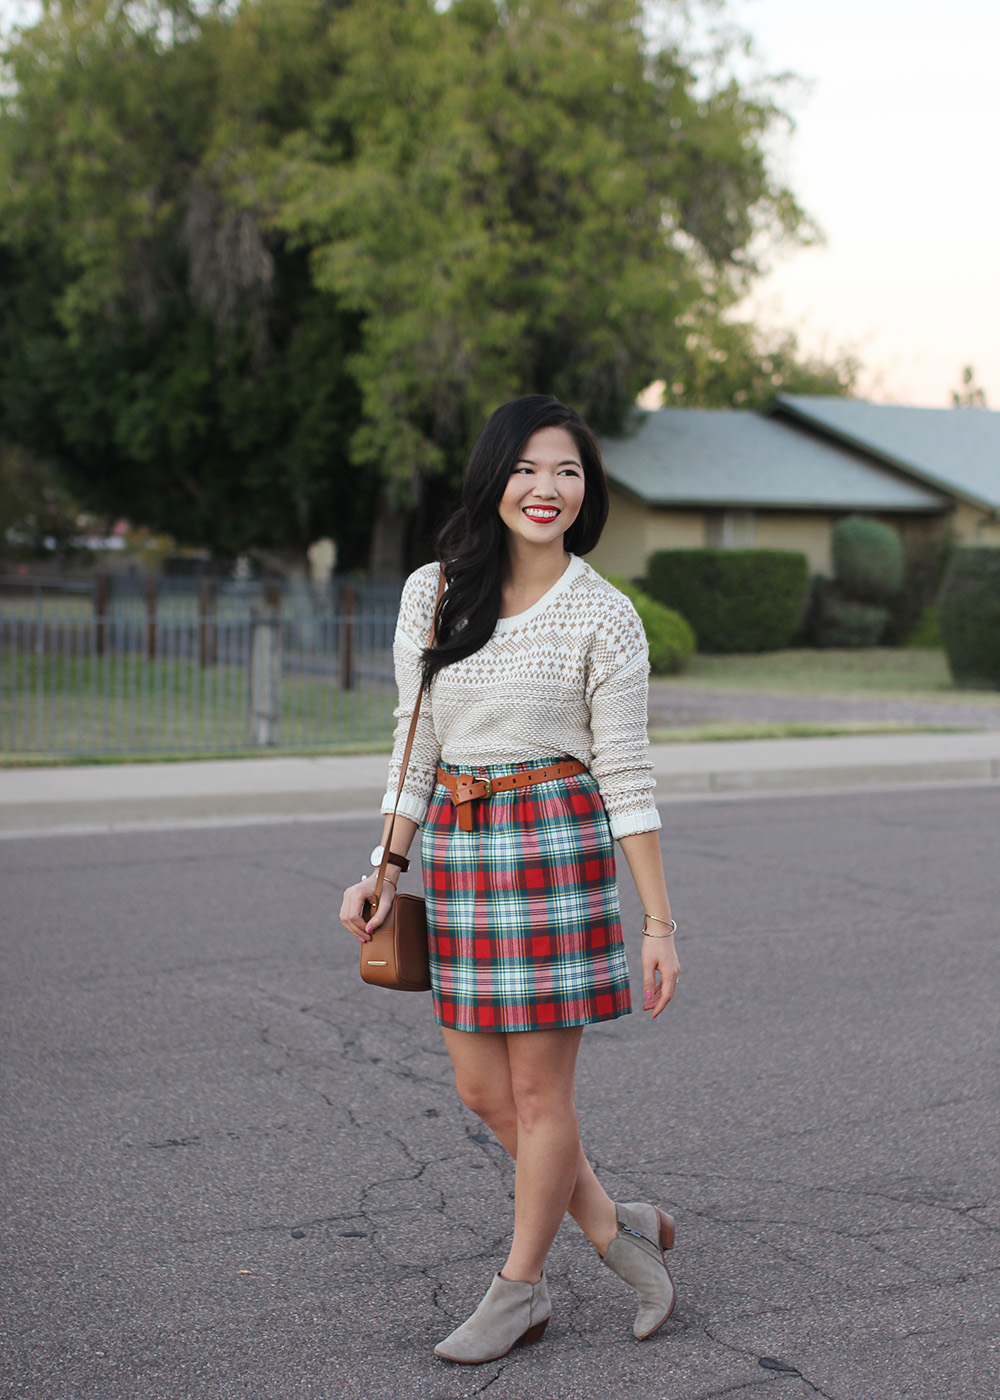 Christmas Plaid Skirt - Skirt The Rules | Life & Style in NYC